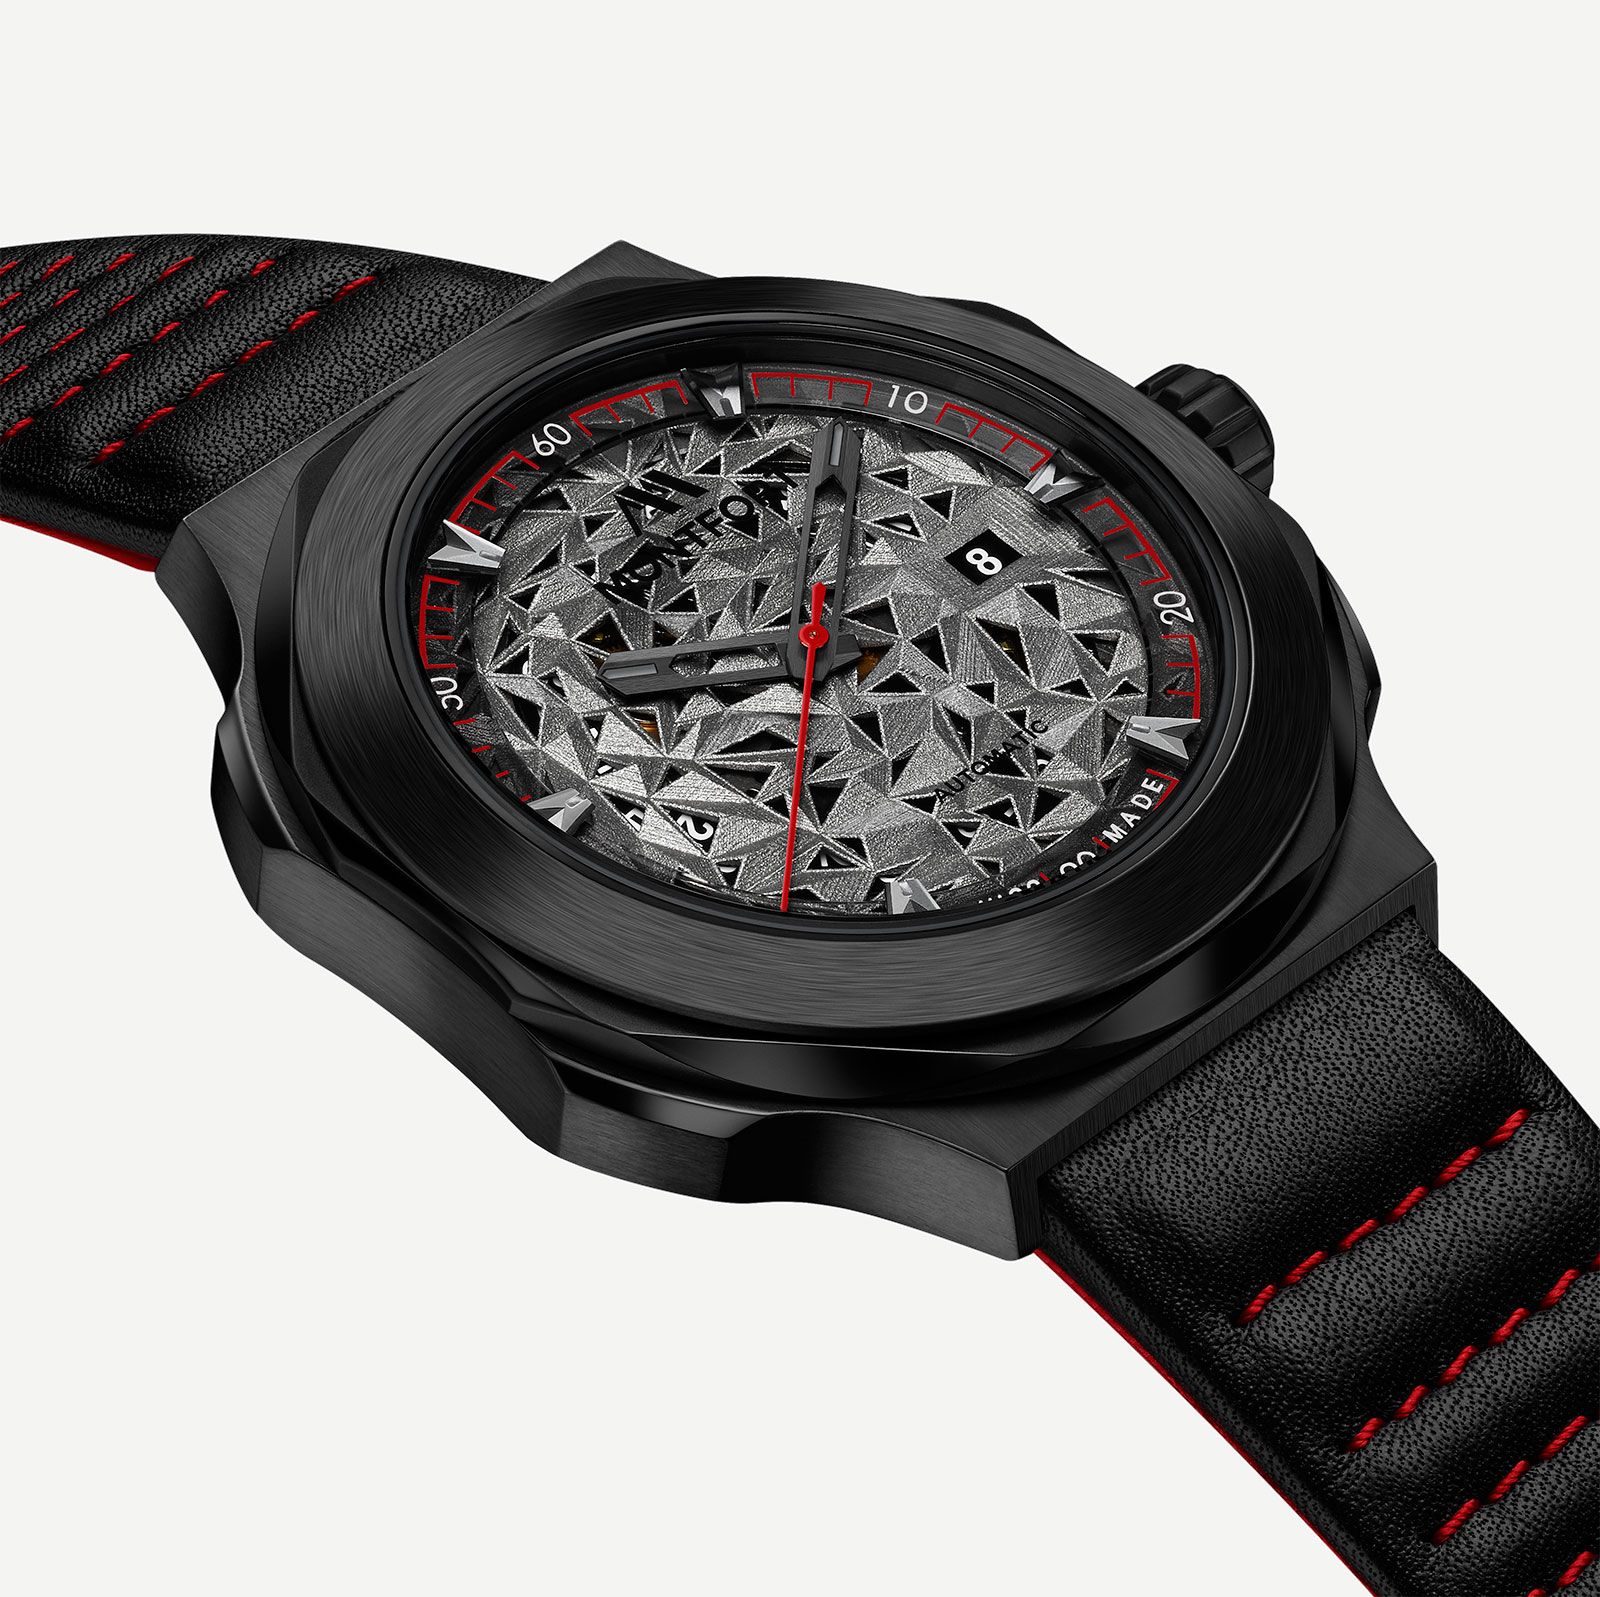 Montfront Strata watch 3D printed dial 6